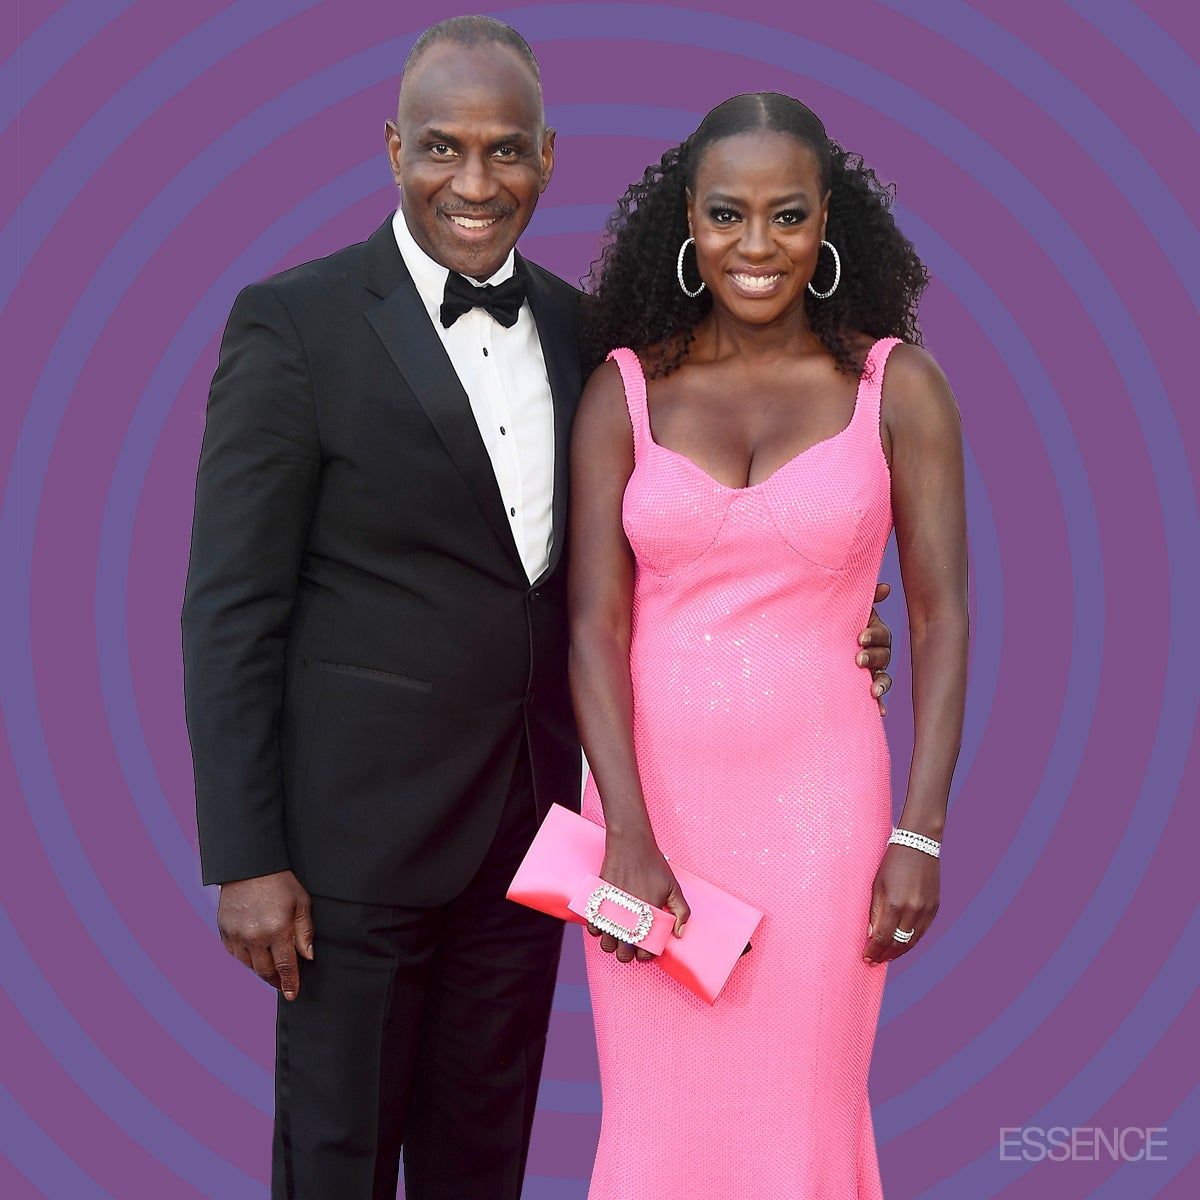 Viola Davis Celebrates 15 Years Of Marriage With Husband Julius Tennon: 'You Are My Heart'